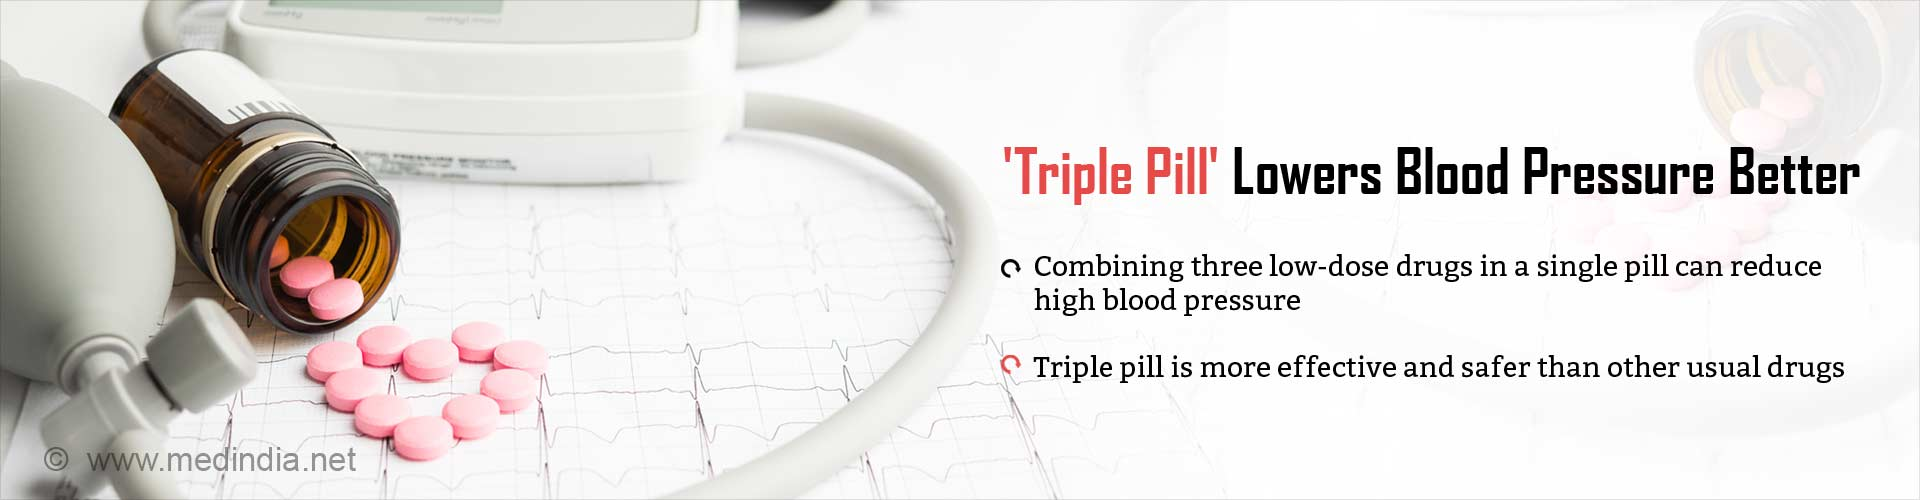 triple pill lowers blood pressure better